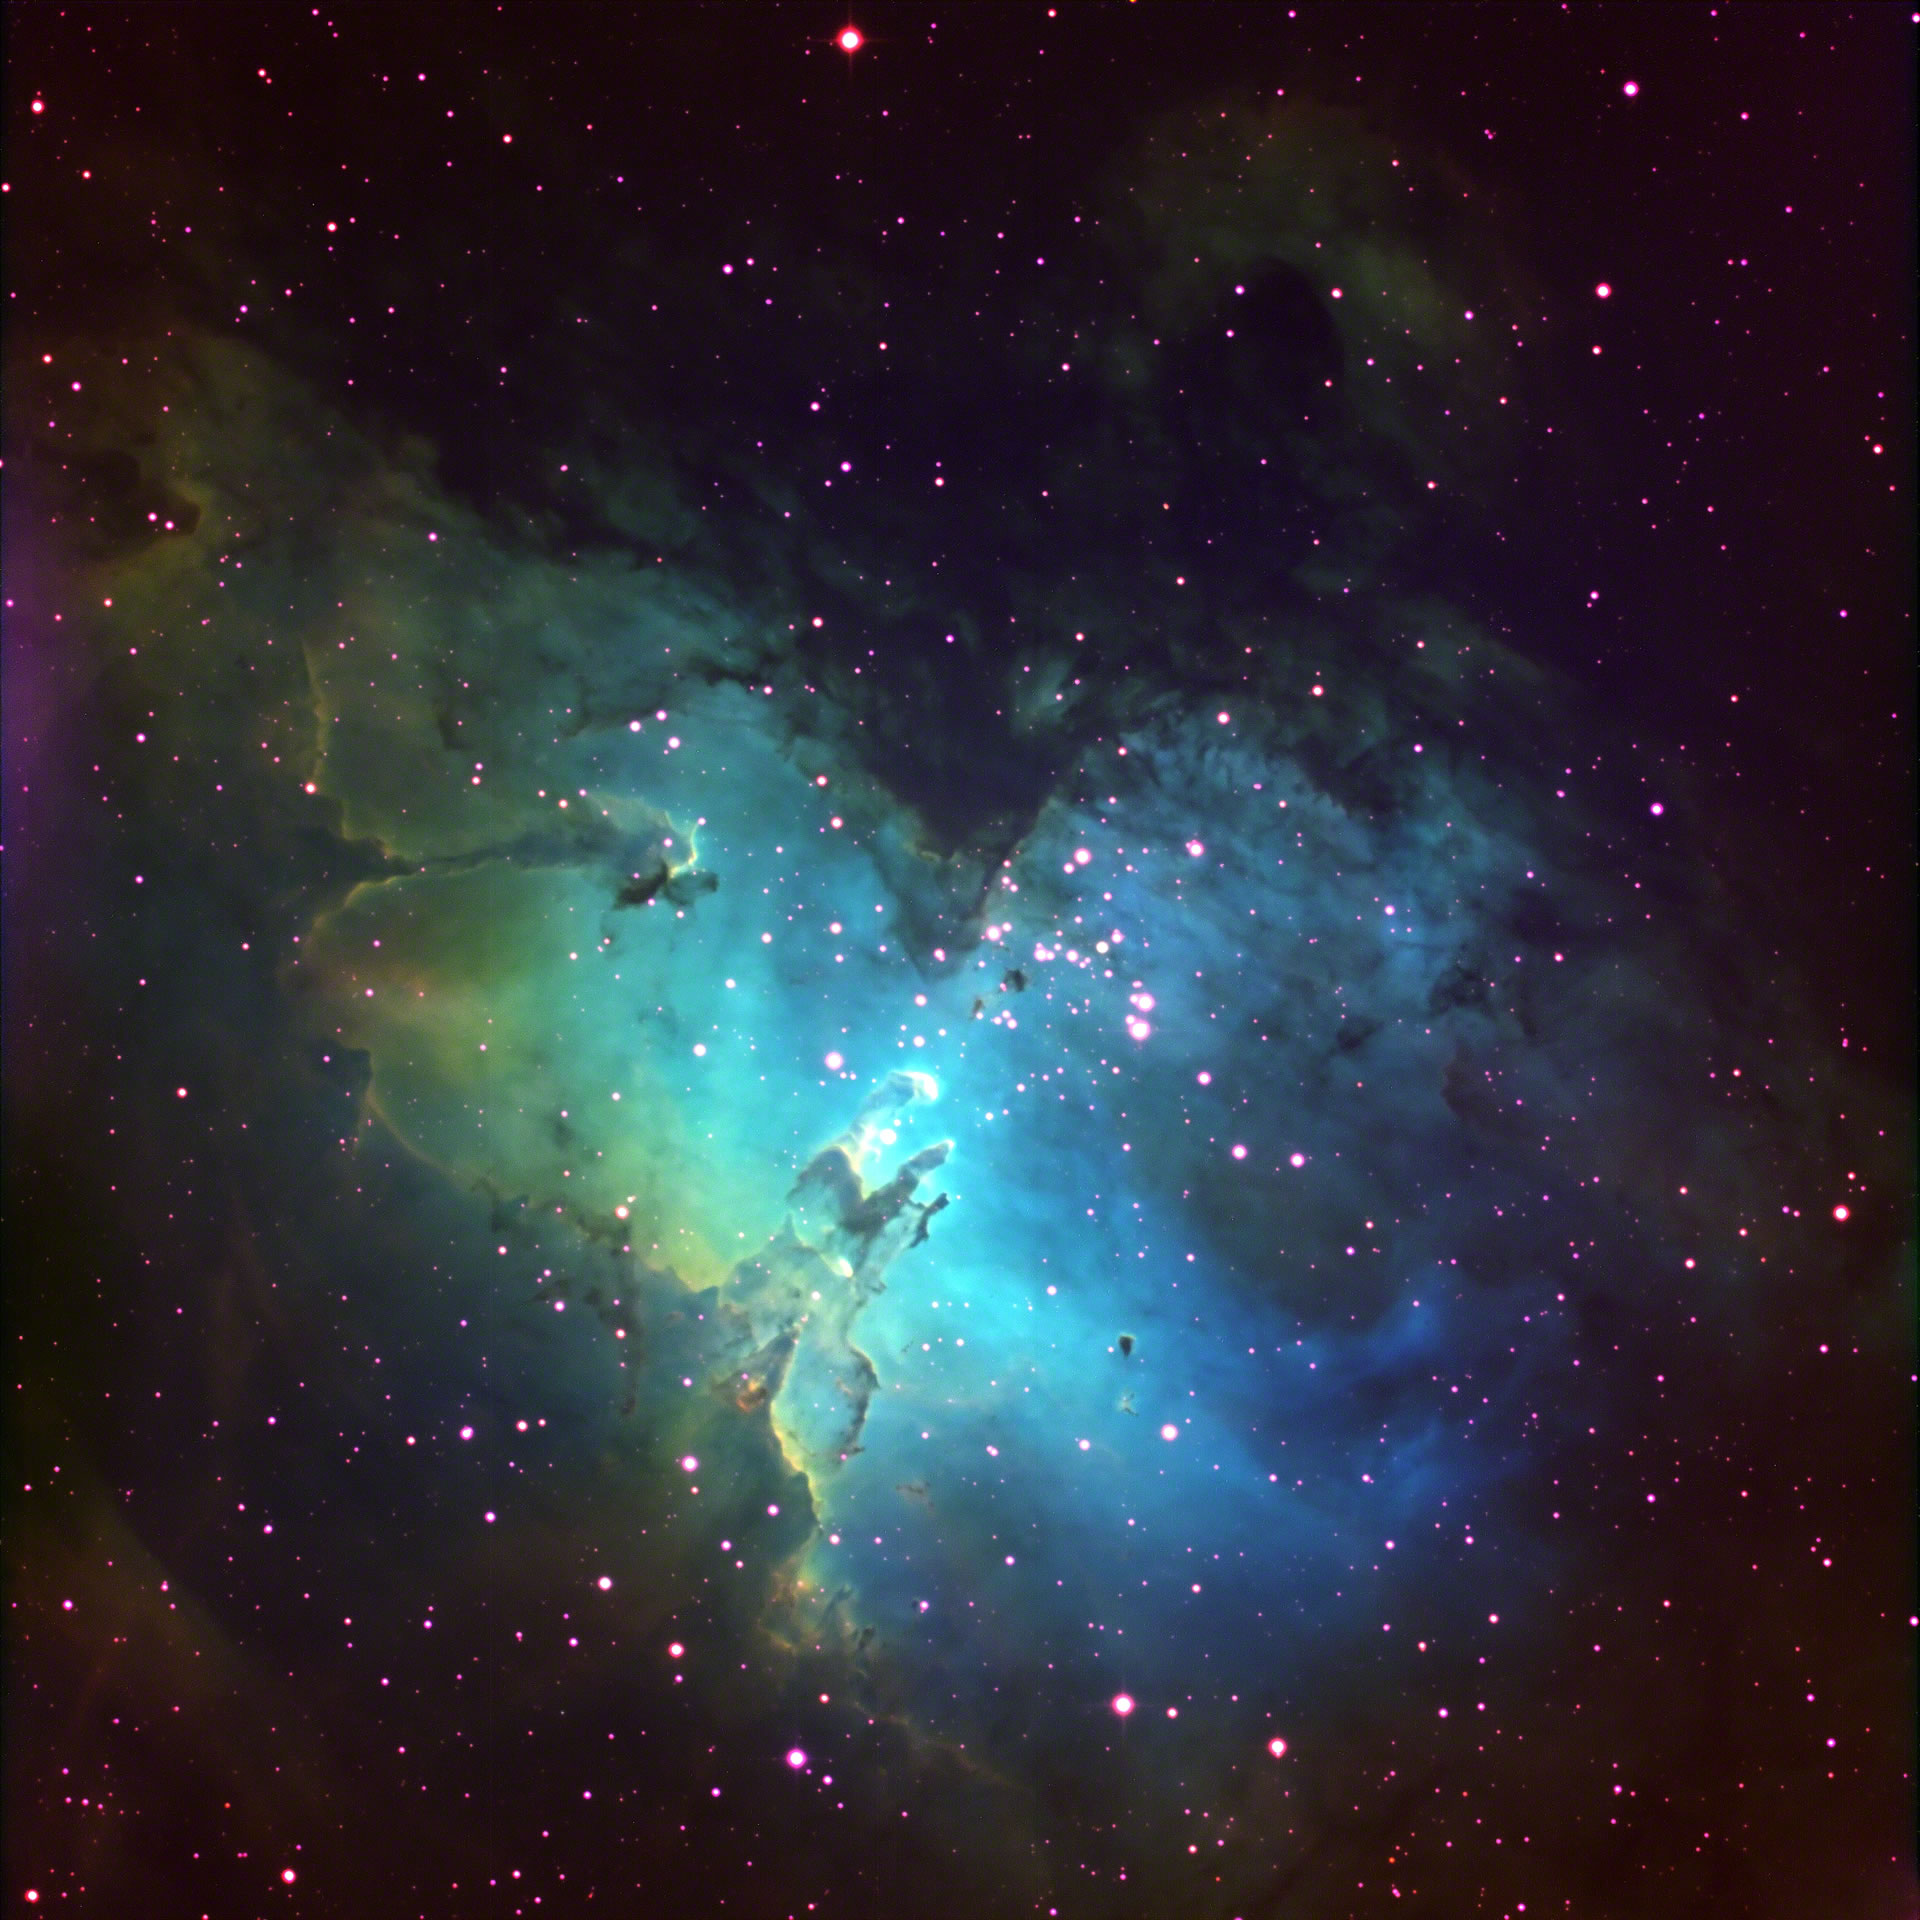 Messier 16; The Eagle Nebula or Star Queen Nebula